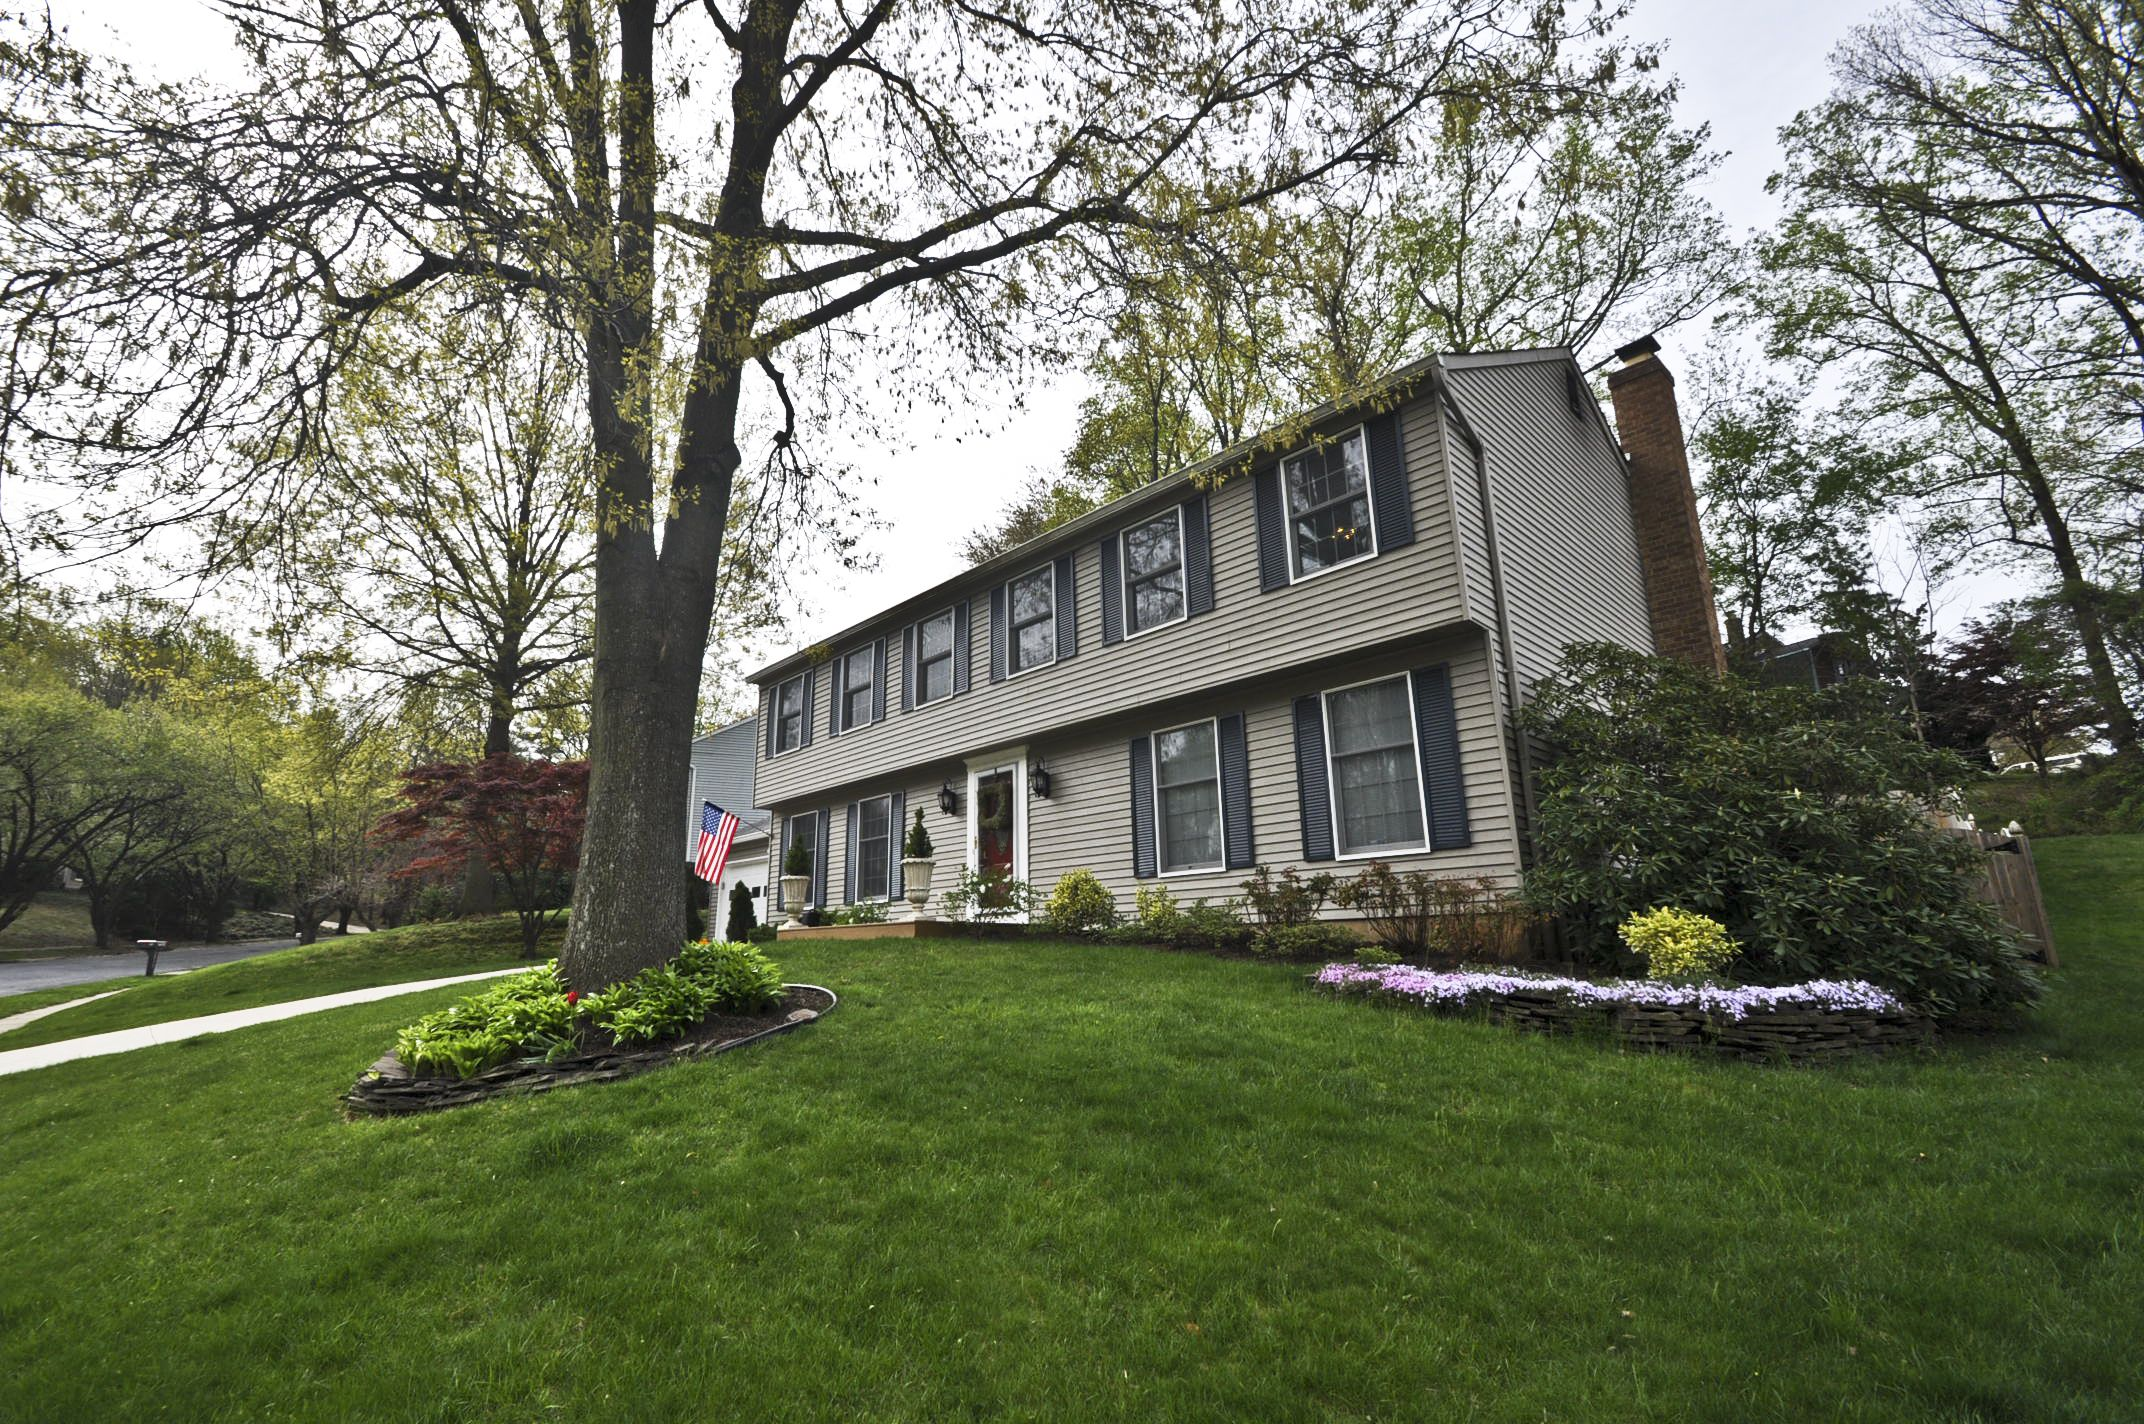 Listed at $540,000**LARGEST MODEL IN BAY HILLS**Fantastic Kitchen with recessed lights, built in pantry, back splash**Complete fenced back yard with Stewart hardscaping**Brand new carpeting throughout in '14**Updated baths**Ceiling Fans**Built in cabs**Gas fireplace**Canopy in rear over basement exit**Wood floors**Gorgeous house**Bay Hills pool**Golf Club** Arnold at it's best**Please give 4 hours notice before showing**